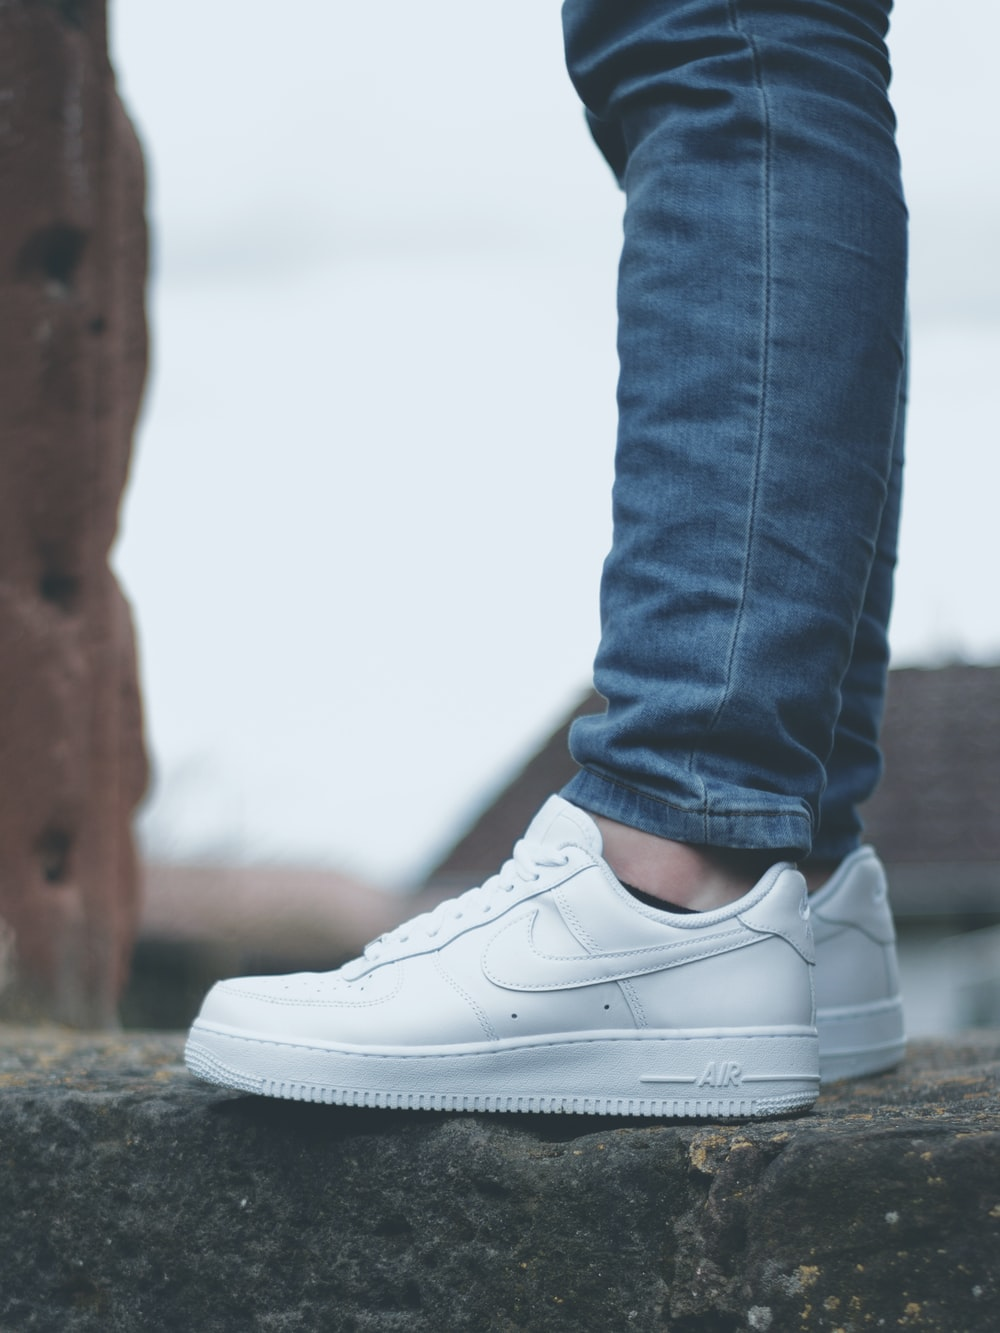 Nike Air Force Pictures Download Free Images On Unsplash